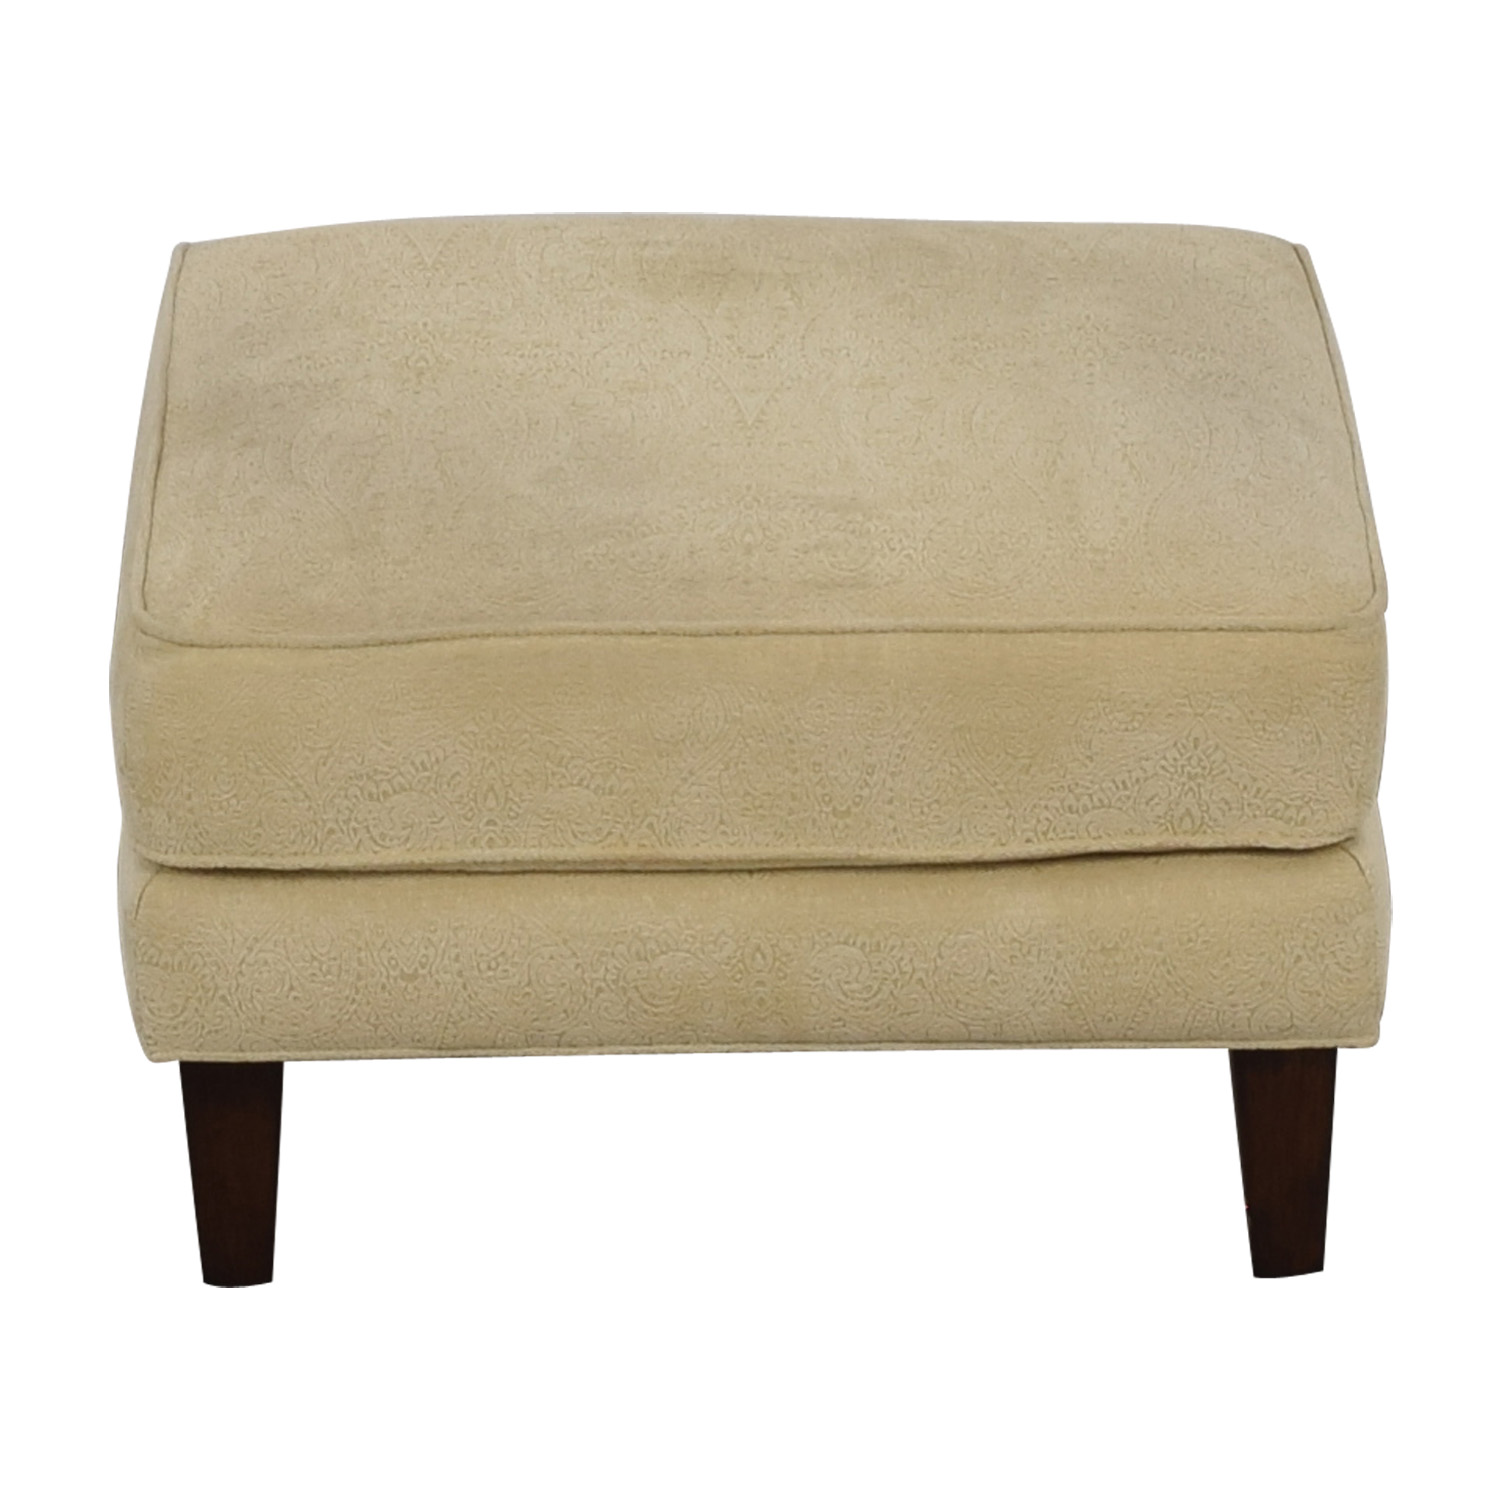 Thomasville Thomasville Cream Ottoman used